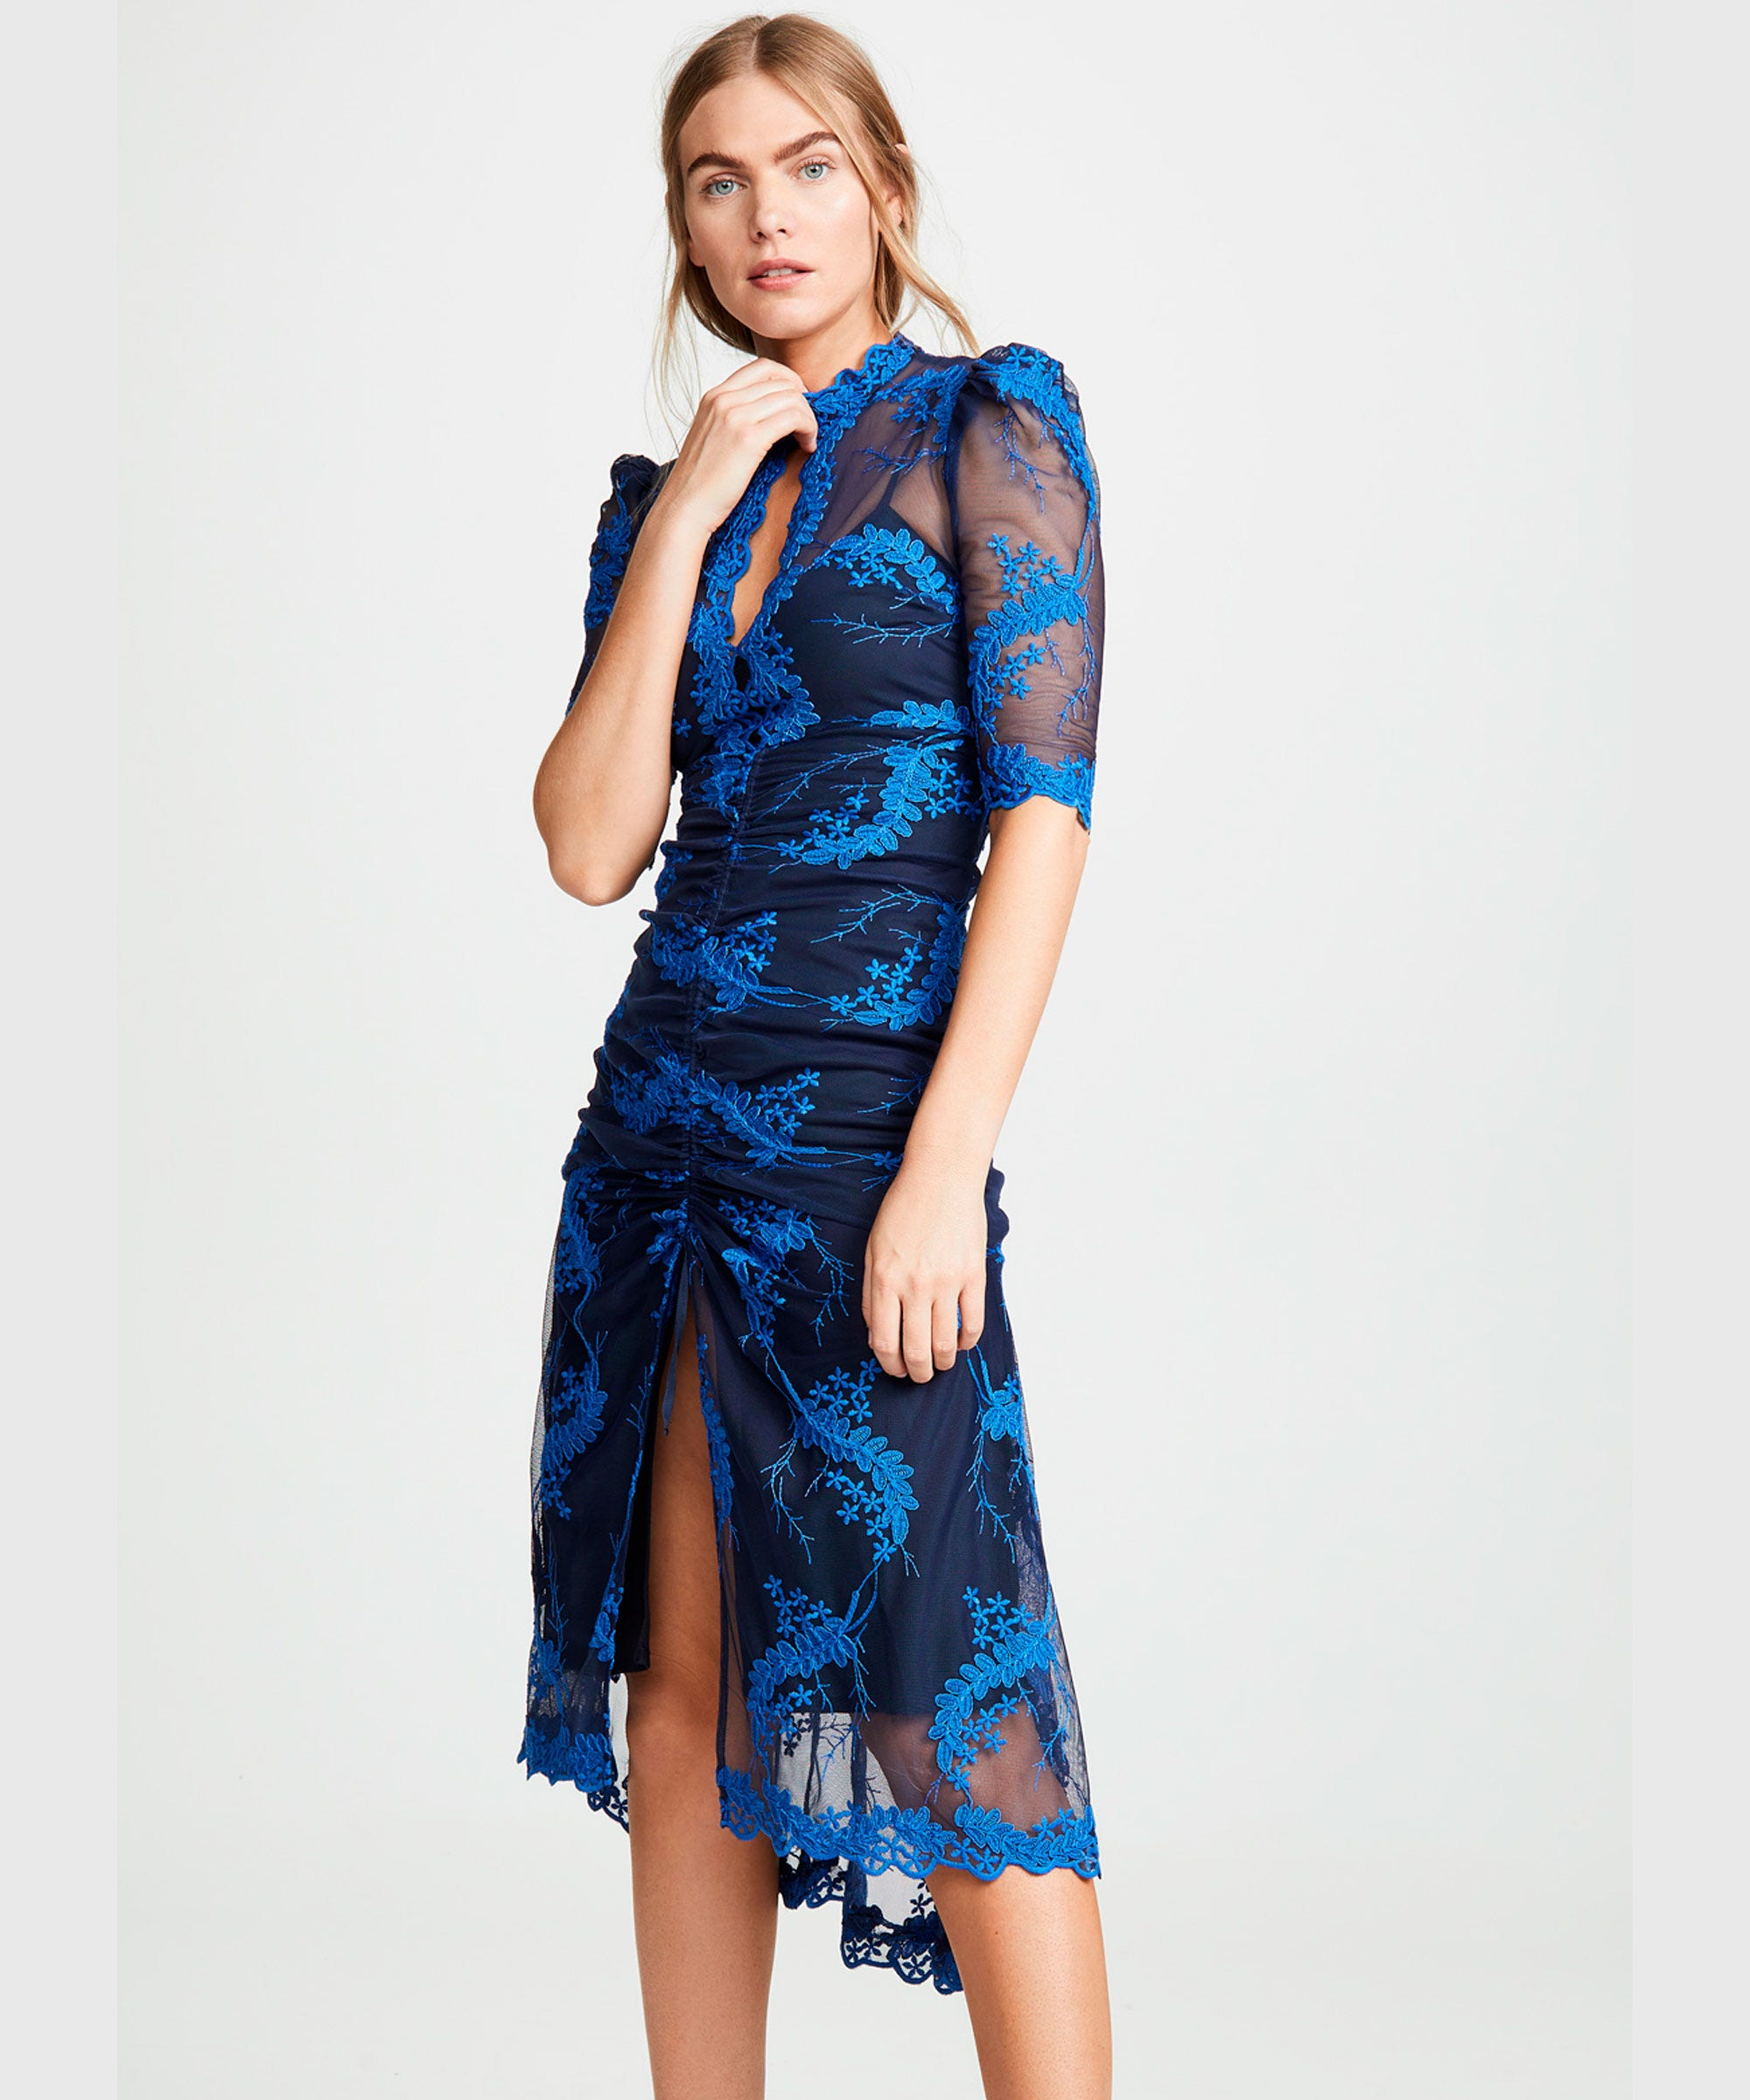 4a21cc7d6850 Summer Dresses 2019: Day, Special Occassion, Wedding